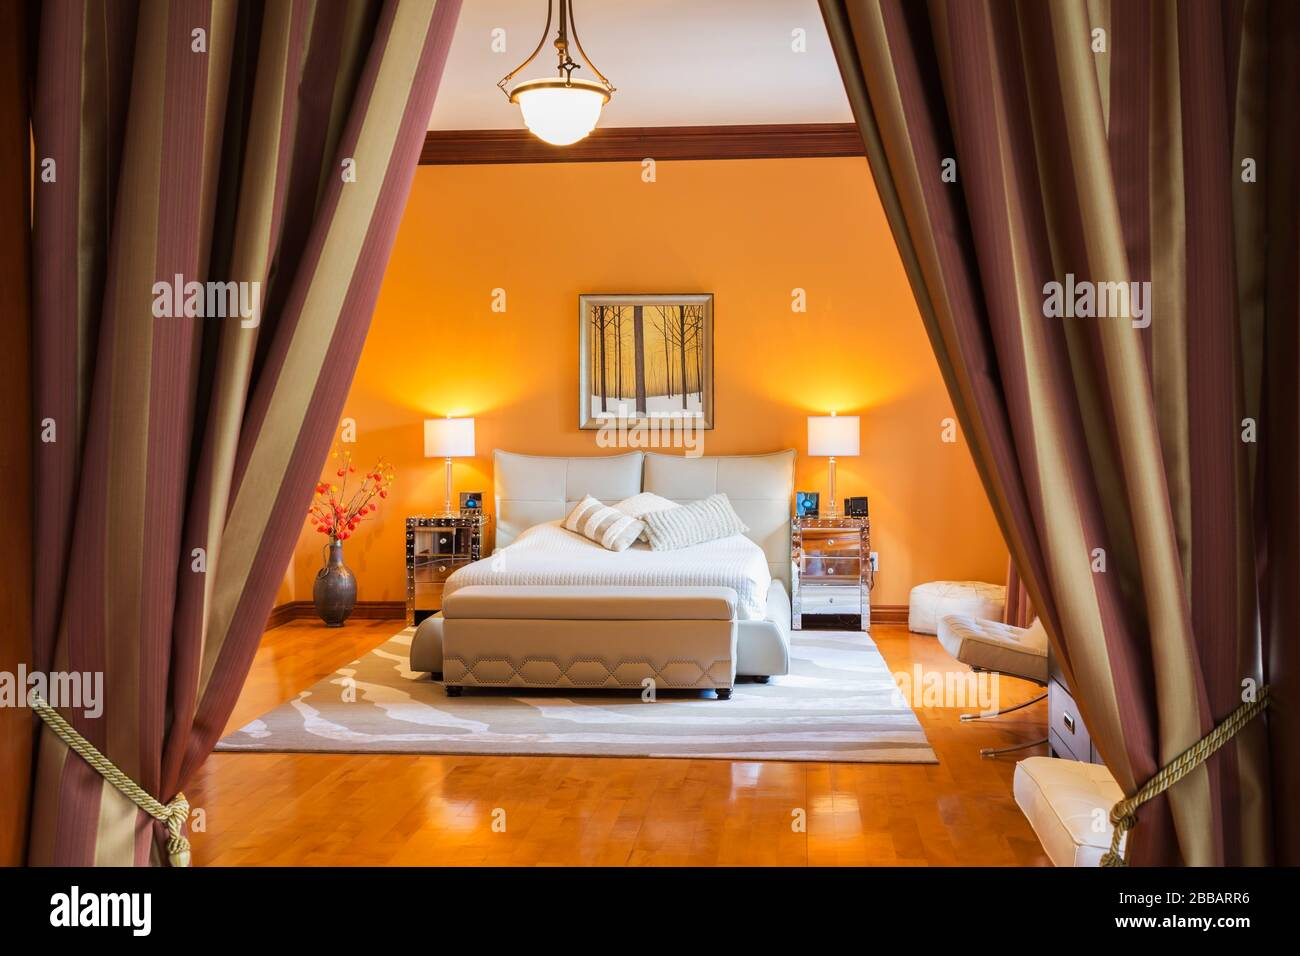 Queen Size Bed With Grey Leather Upholstered Base And Headboard In Upstairs Master Bedroom Inside A Luxurious Residential Home Quebec Canada This Image Is Property Released Cupr0341 Stock Photo Alamy